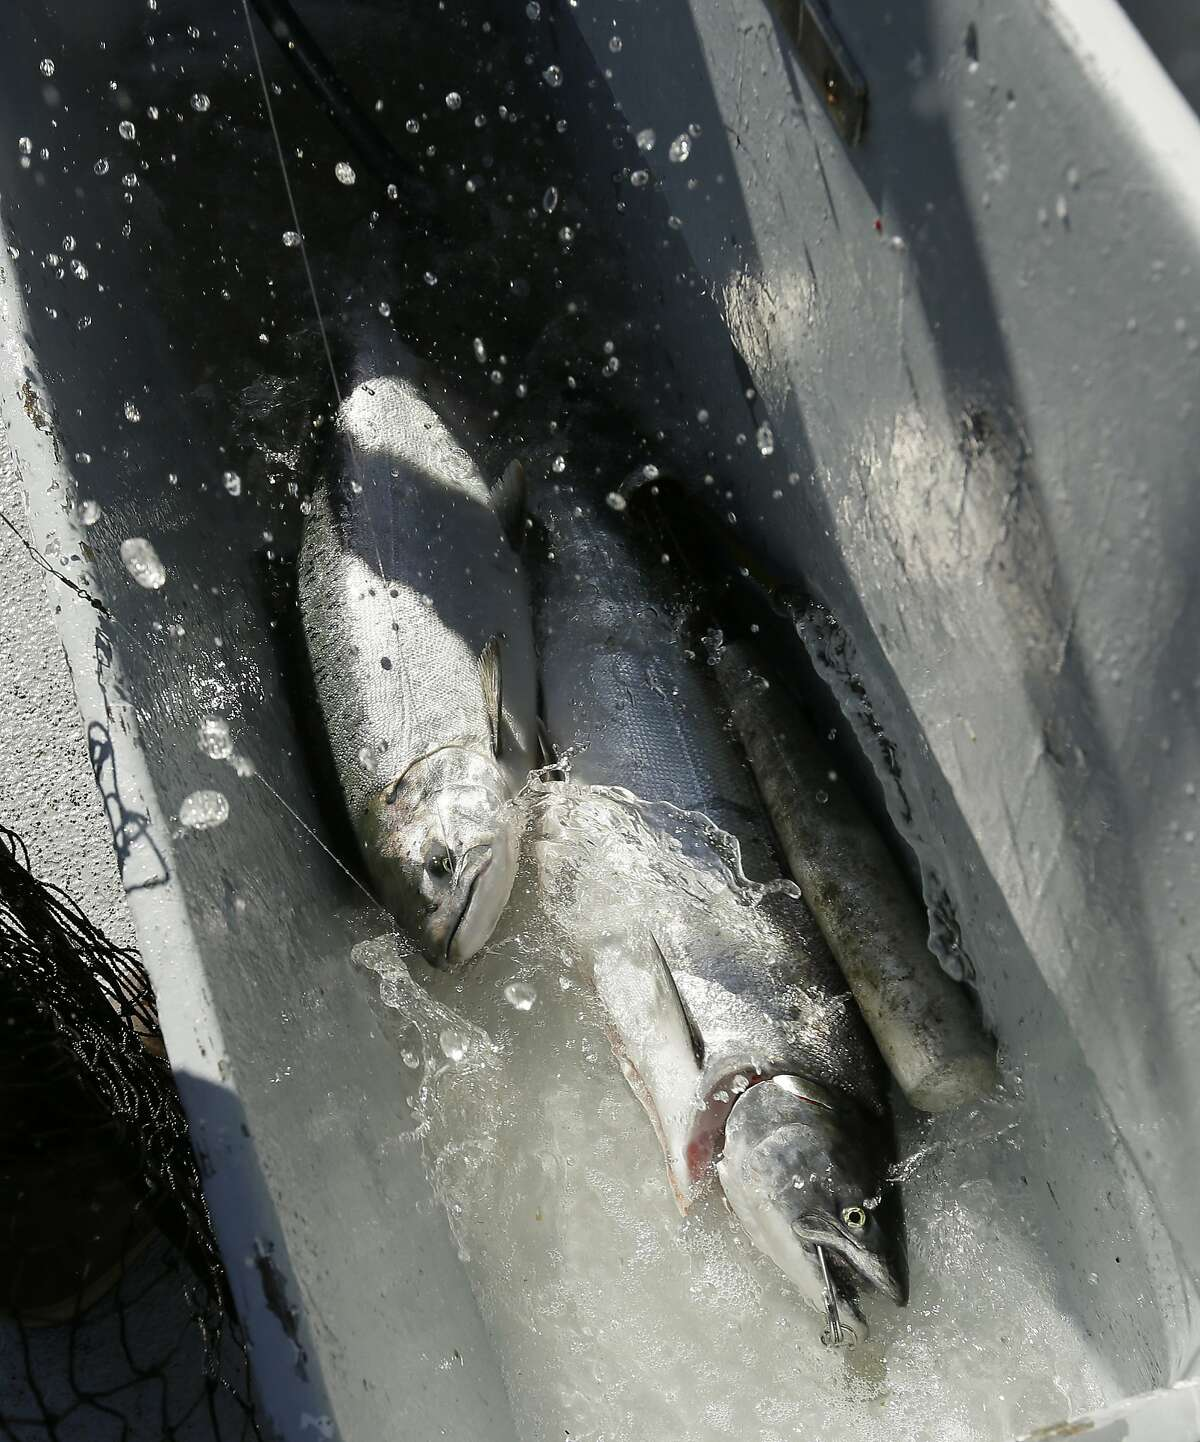 FILE - In this Aug. 29, 2016, file photo, a salmon flails in a water tub after being caught off the coast of Stinson Beach, Calif. A new study led by researchers at the University of California at Davis and released Tuesday, May 16, 2017, estimated 45 percent of California's native salmon species would go extinct in 50 years, pushed out by human development, drought and climate change. (AP Photo/Eric Risberg, File)